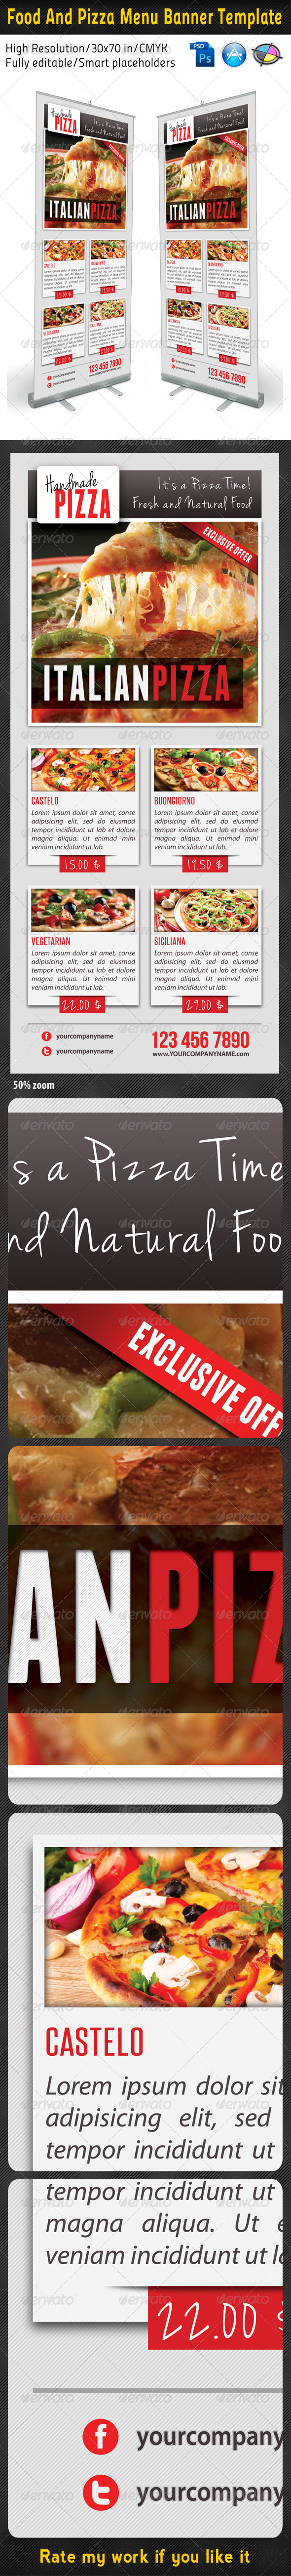 Food And Pizza Menu Banner Template 04 - Signage Print Templates